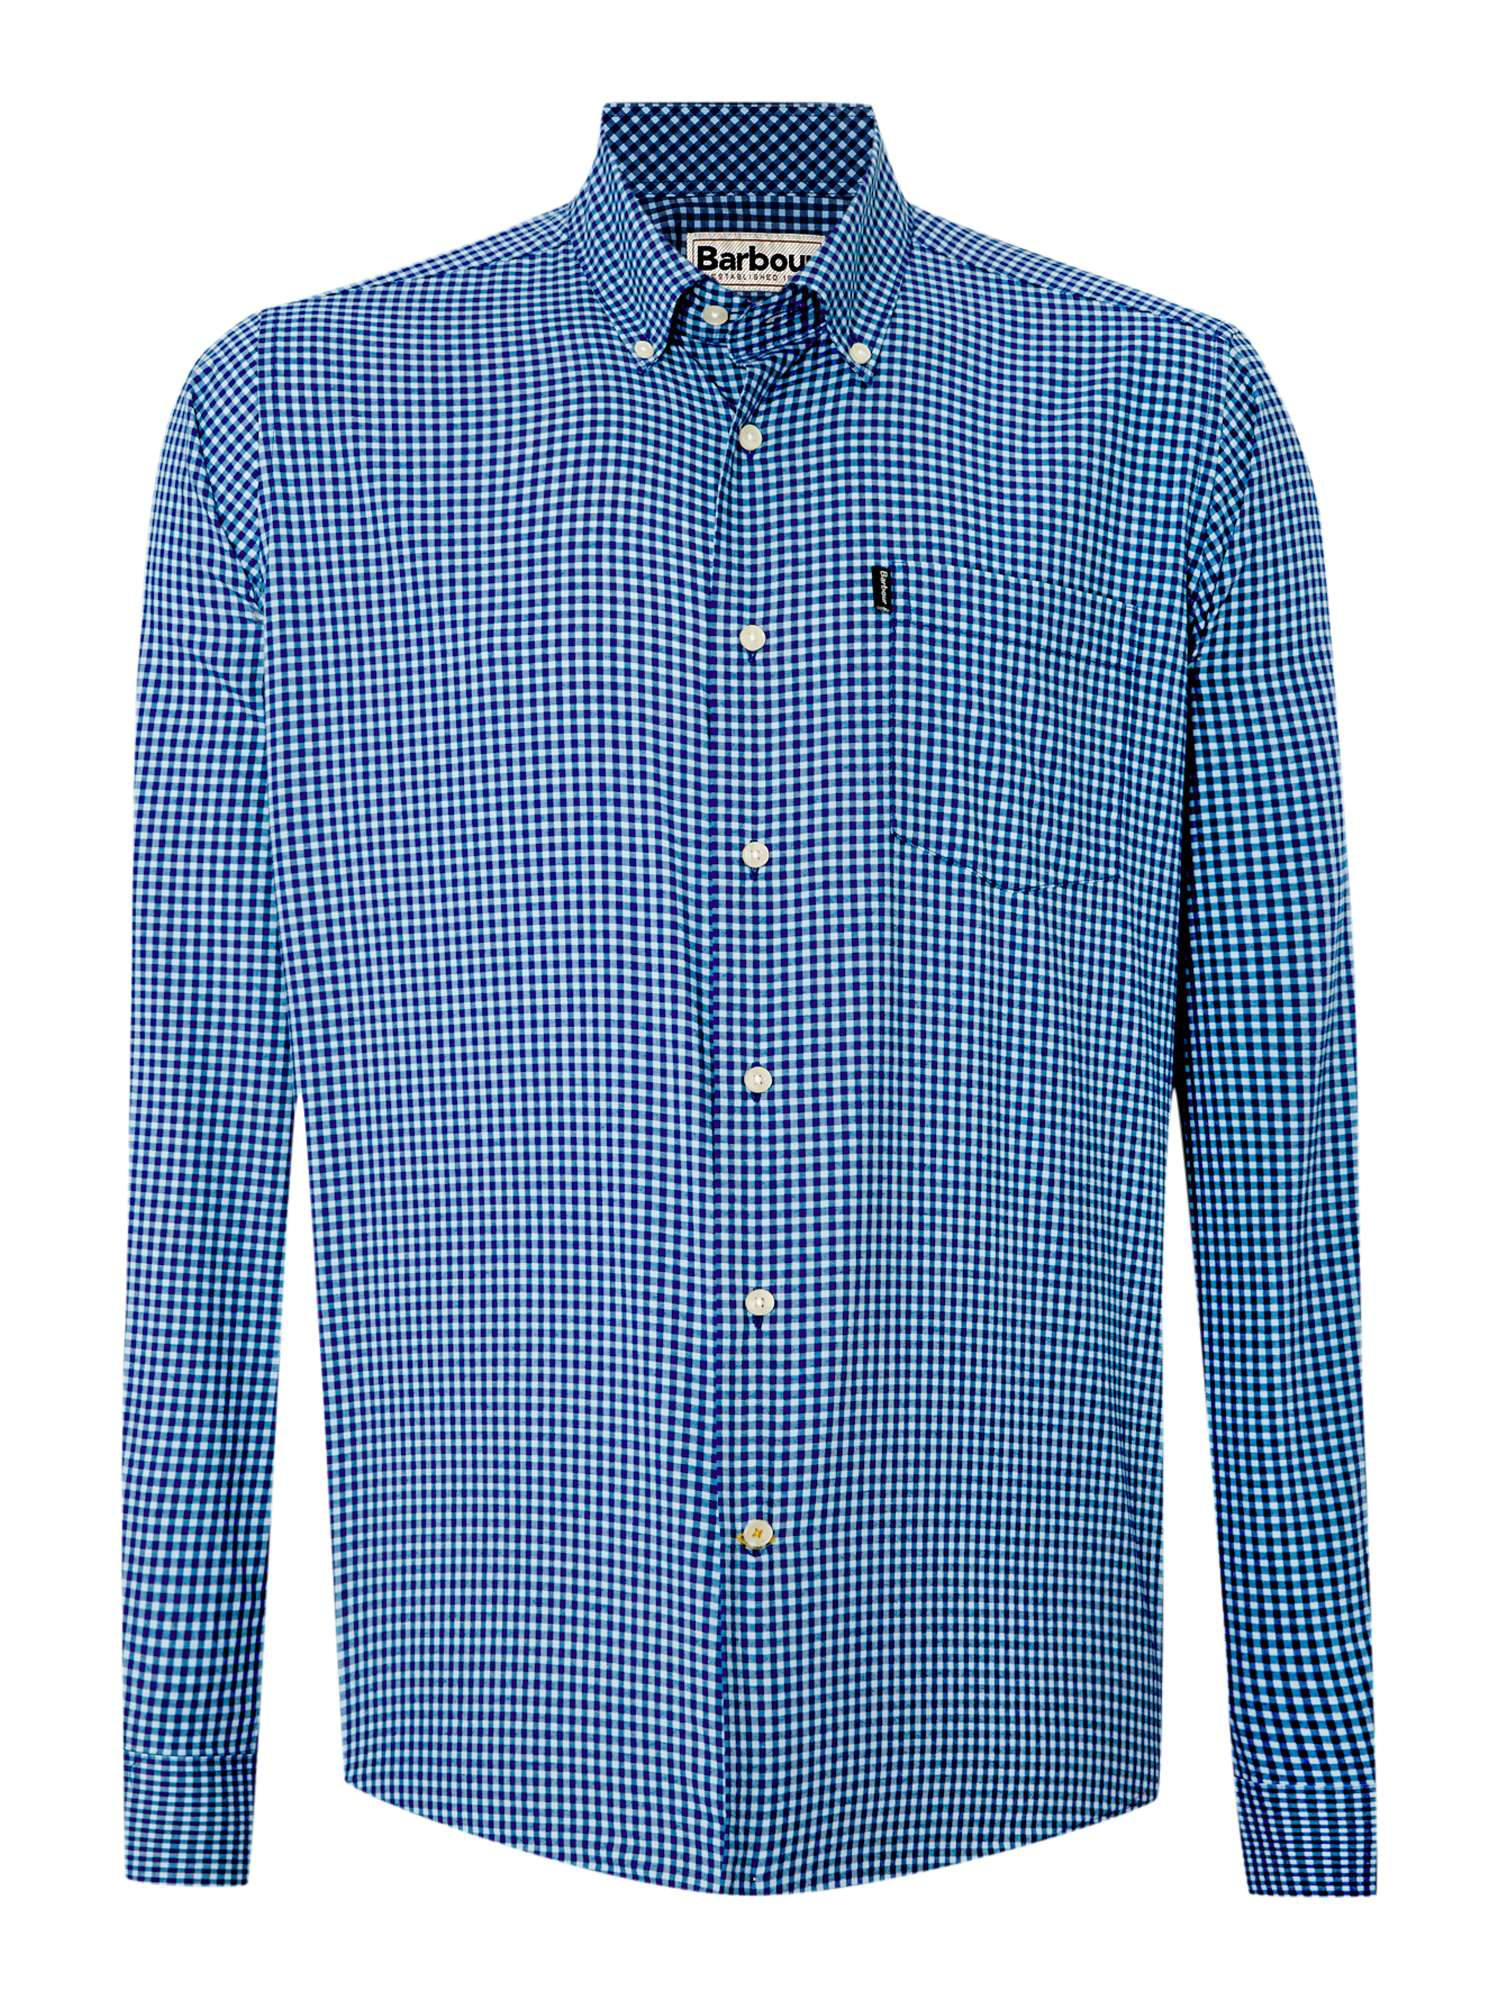 Barbour Mens Shirts House Of Fraser Tendencies Tshirt Washed Pocket Nv Navy S Gingham Shirt